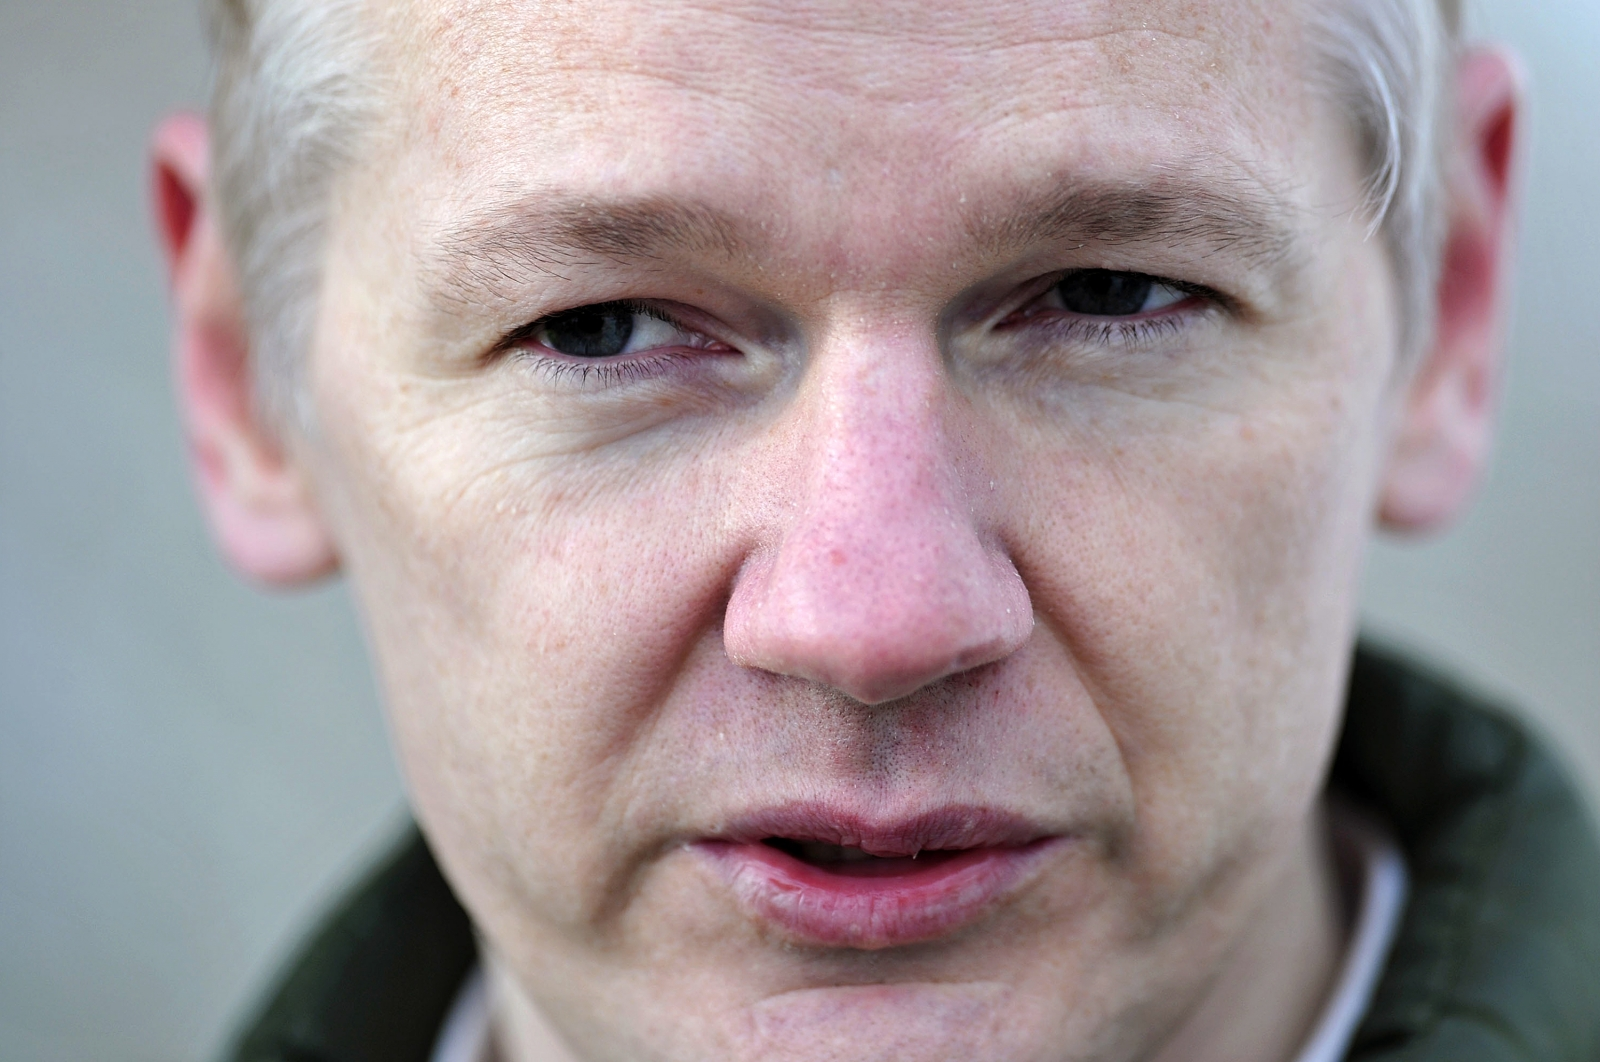 Julian Assange, WikiLeaks founder